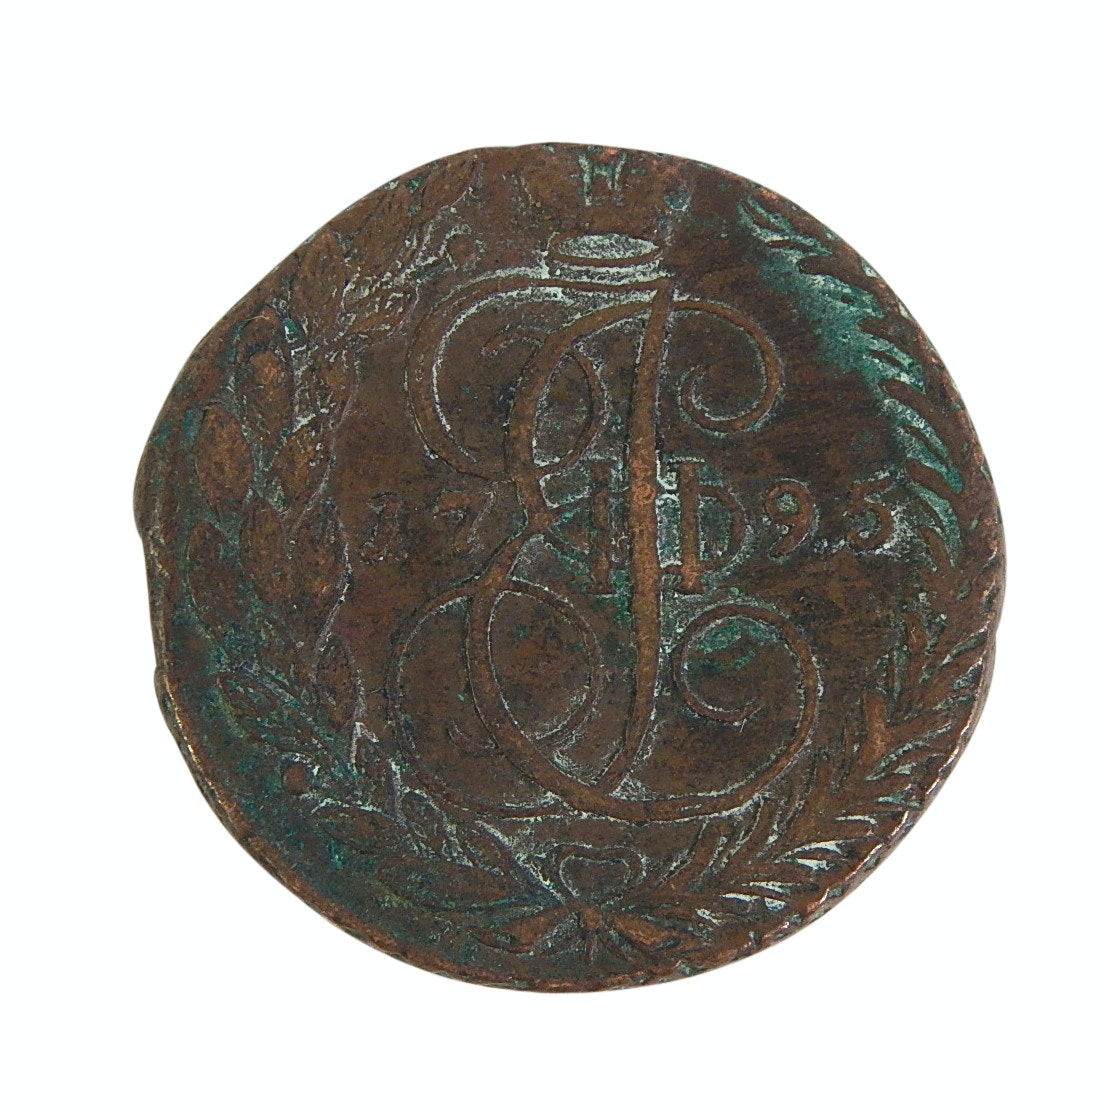 1795 Russian Imperial Empire 5 Kopeks Copper Coin